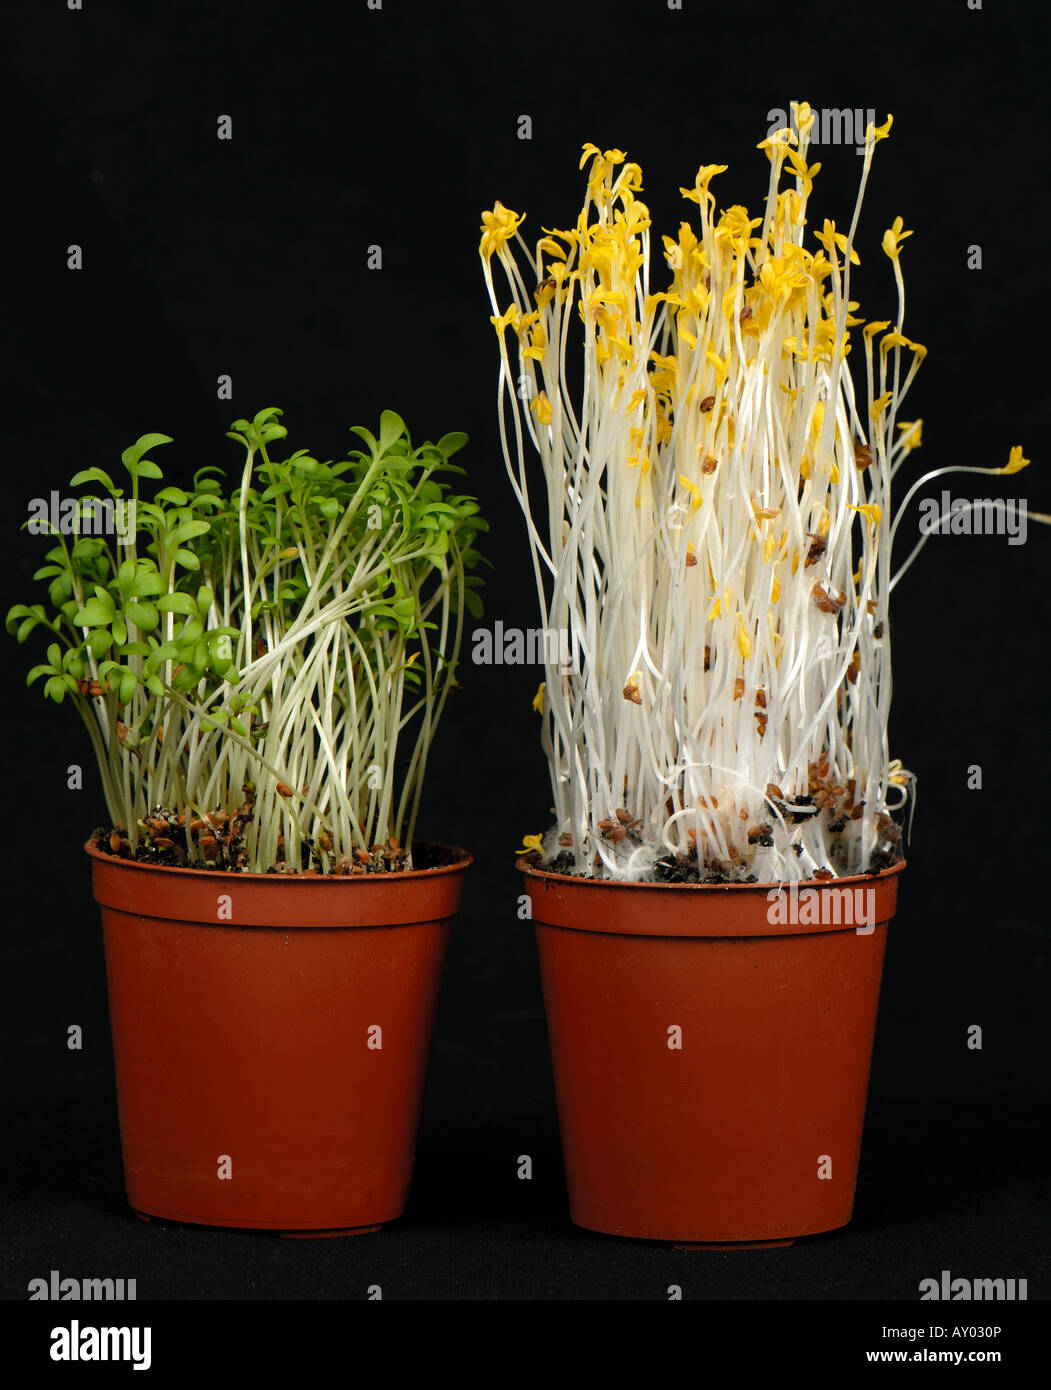 cress seedlings left grown in normal light compared to seedlings stock photo 16947957 alamy. Black Bedroom Furniture Sets. Home Design Ideas